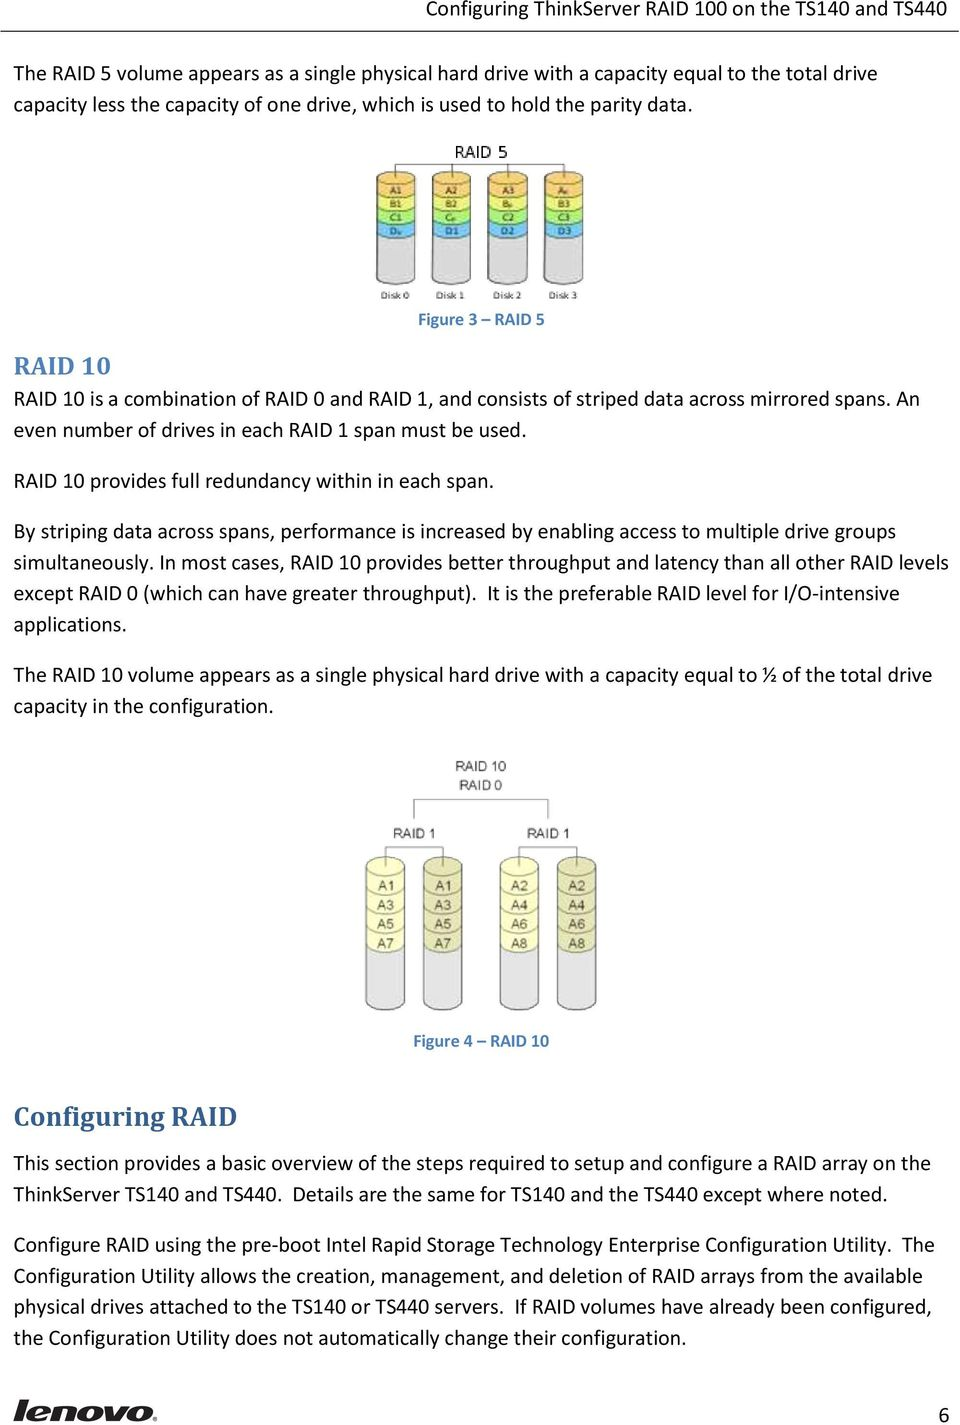 RAID 10 provides full redundancy within in each span. By striping data across spans, performance is increased by enabling access to multiple drive groups simultaneously.